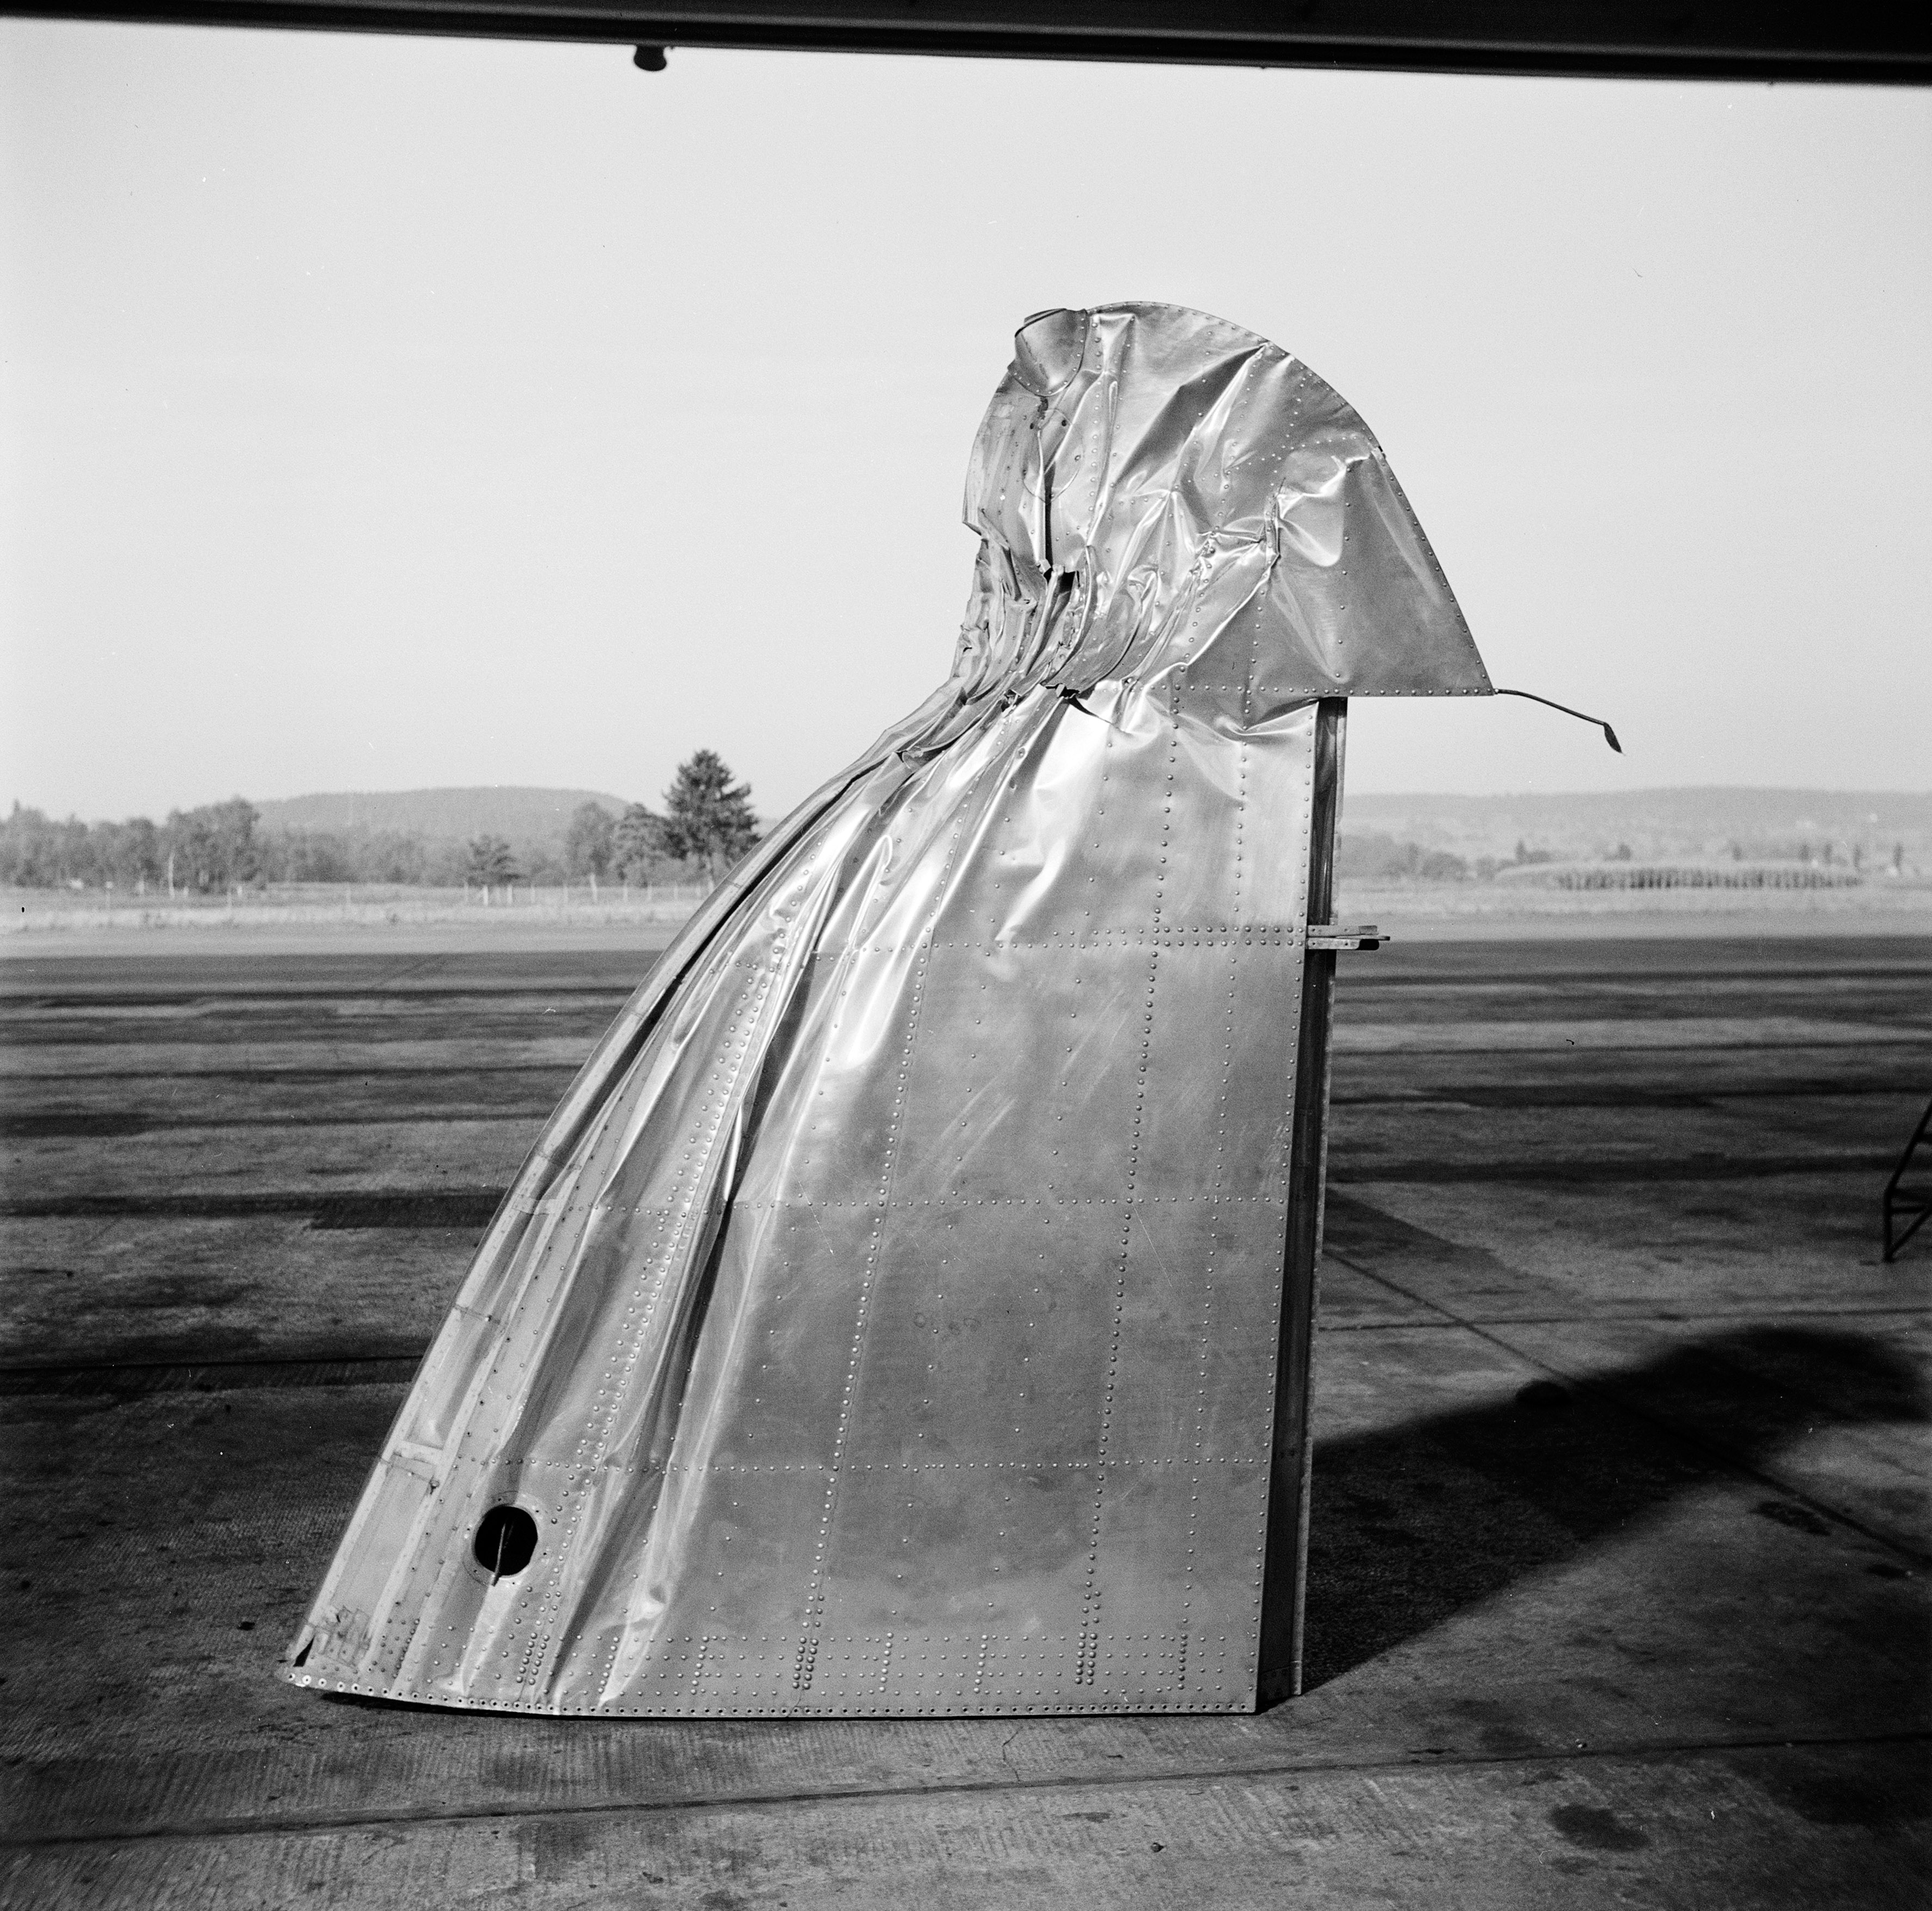 A damaged wing tip in the 1940s